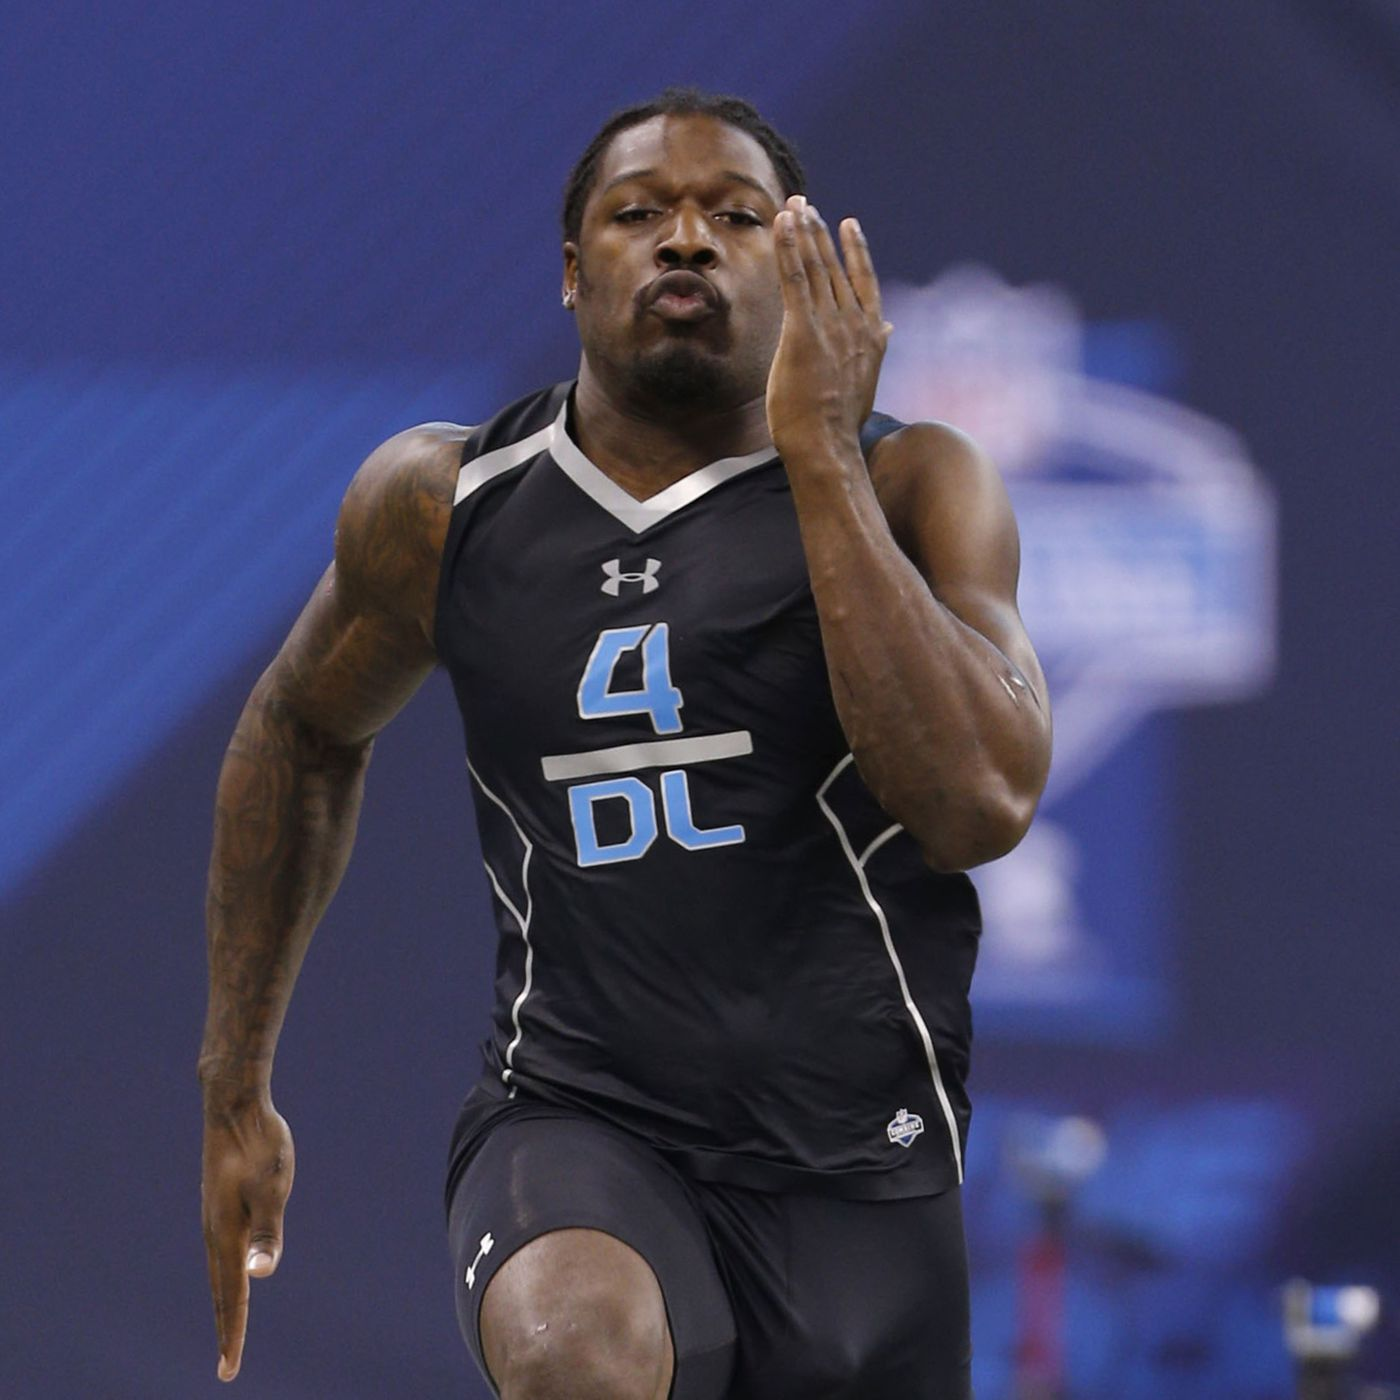 2014 Nfl Combine Results Defensive Line 40 Yard Dash Bench Press More Silver And Black Pride